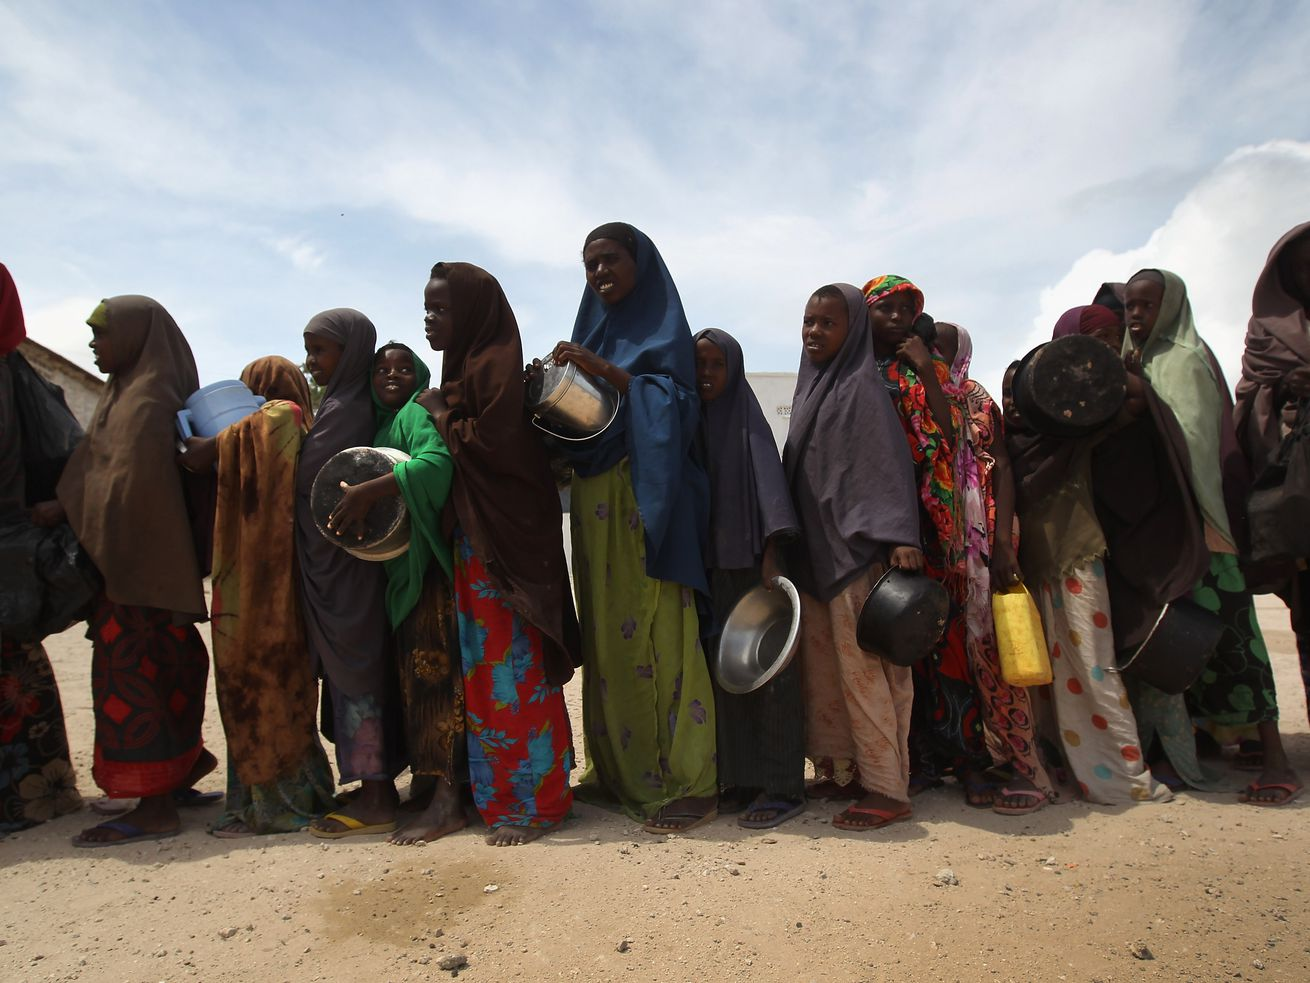 Women and children stand in line for food aid on August 14, 2011, in Mogadishu, Somalia.